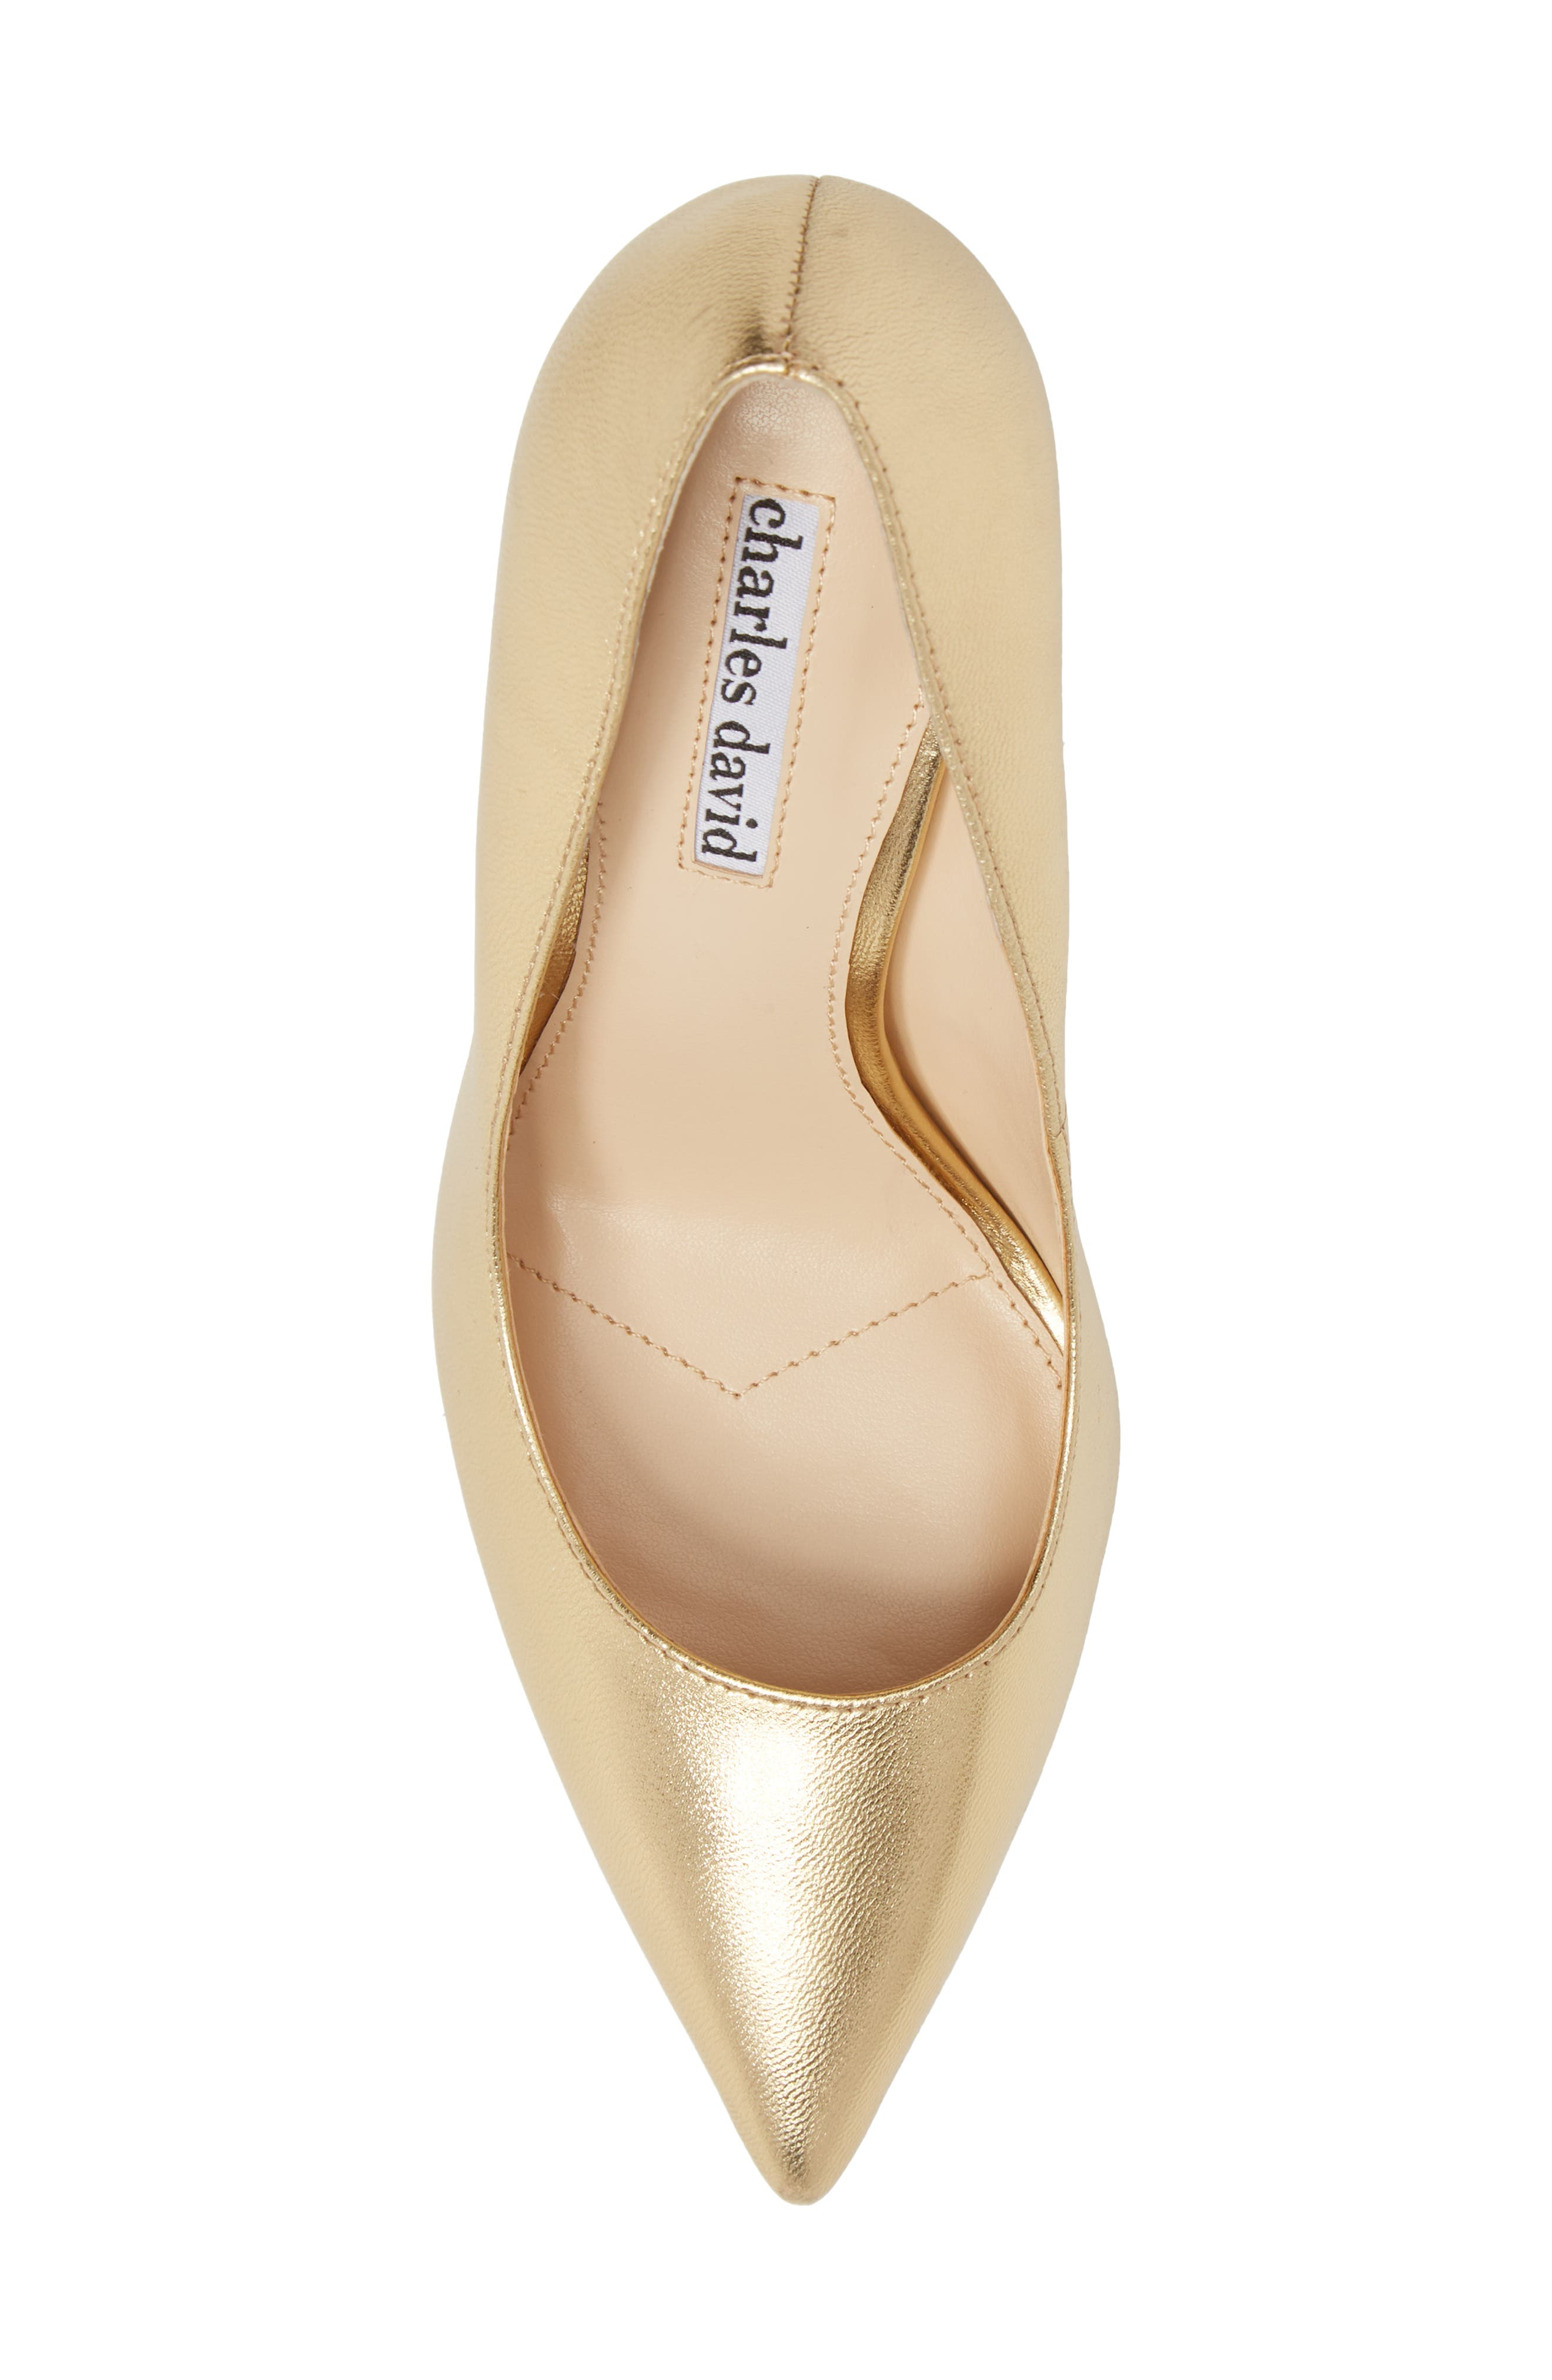 CHARLES DAVID, Calessi Pointy Toe Pump, Alternate thumbnail 5, color, GOLD LEATHER